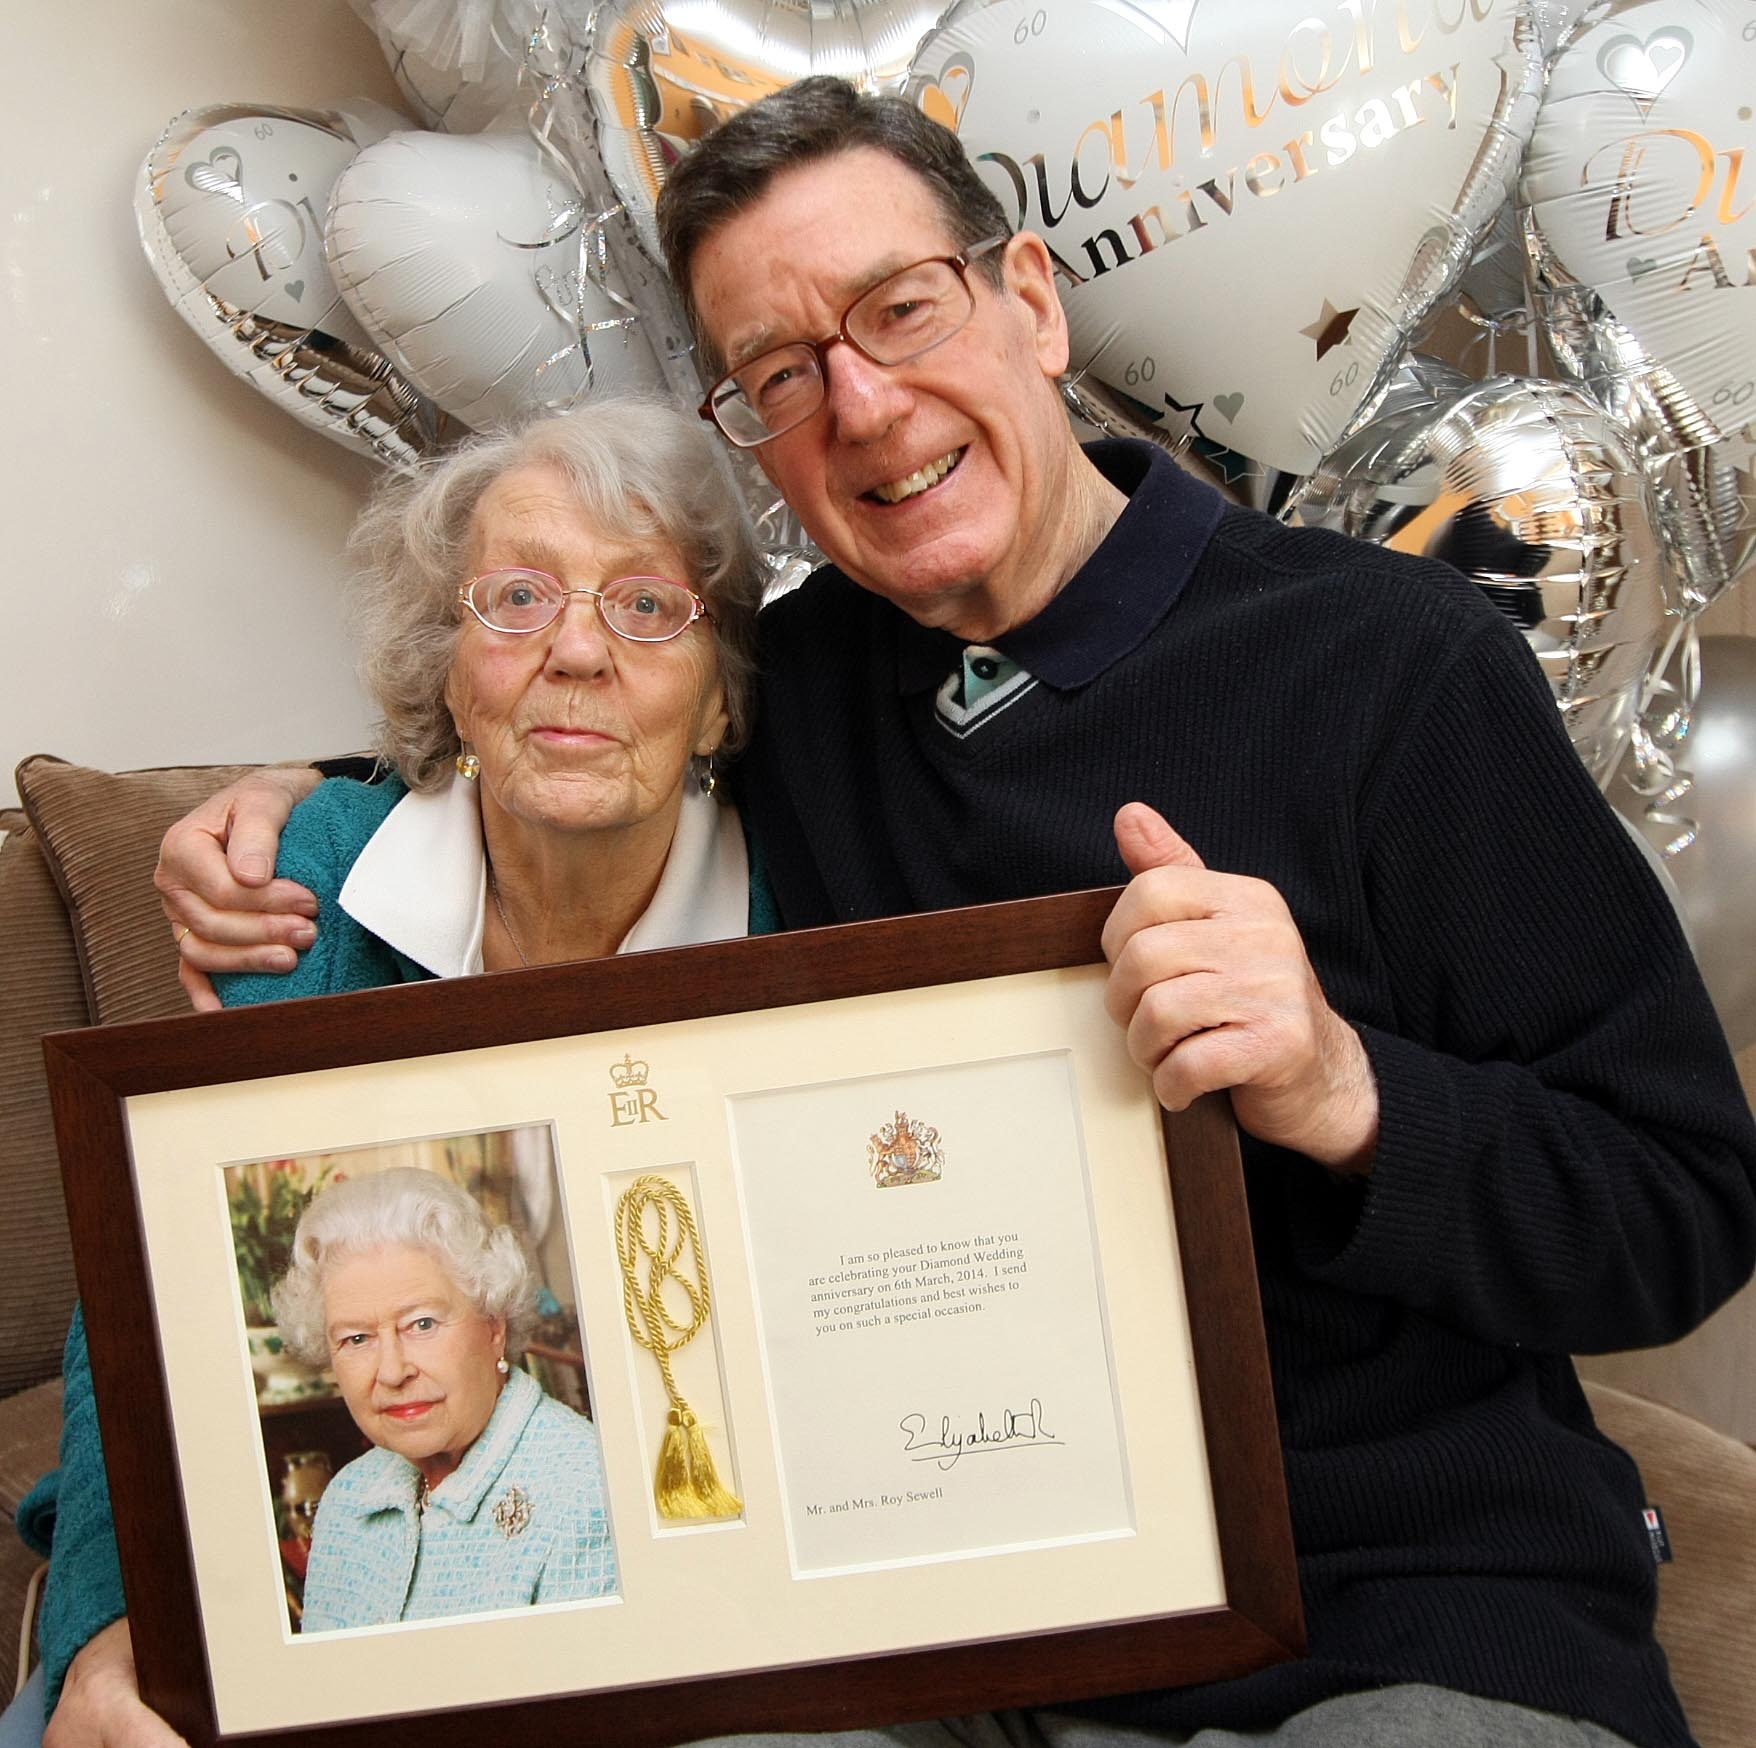 Roy and Mavis Sewell are celebrating 60 years of marriage